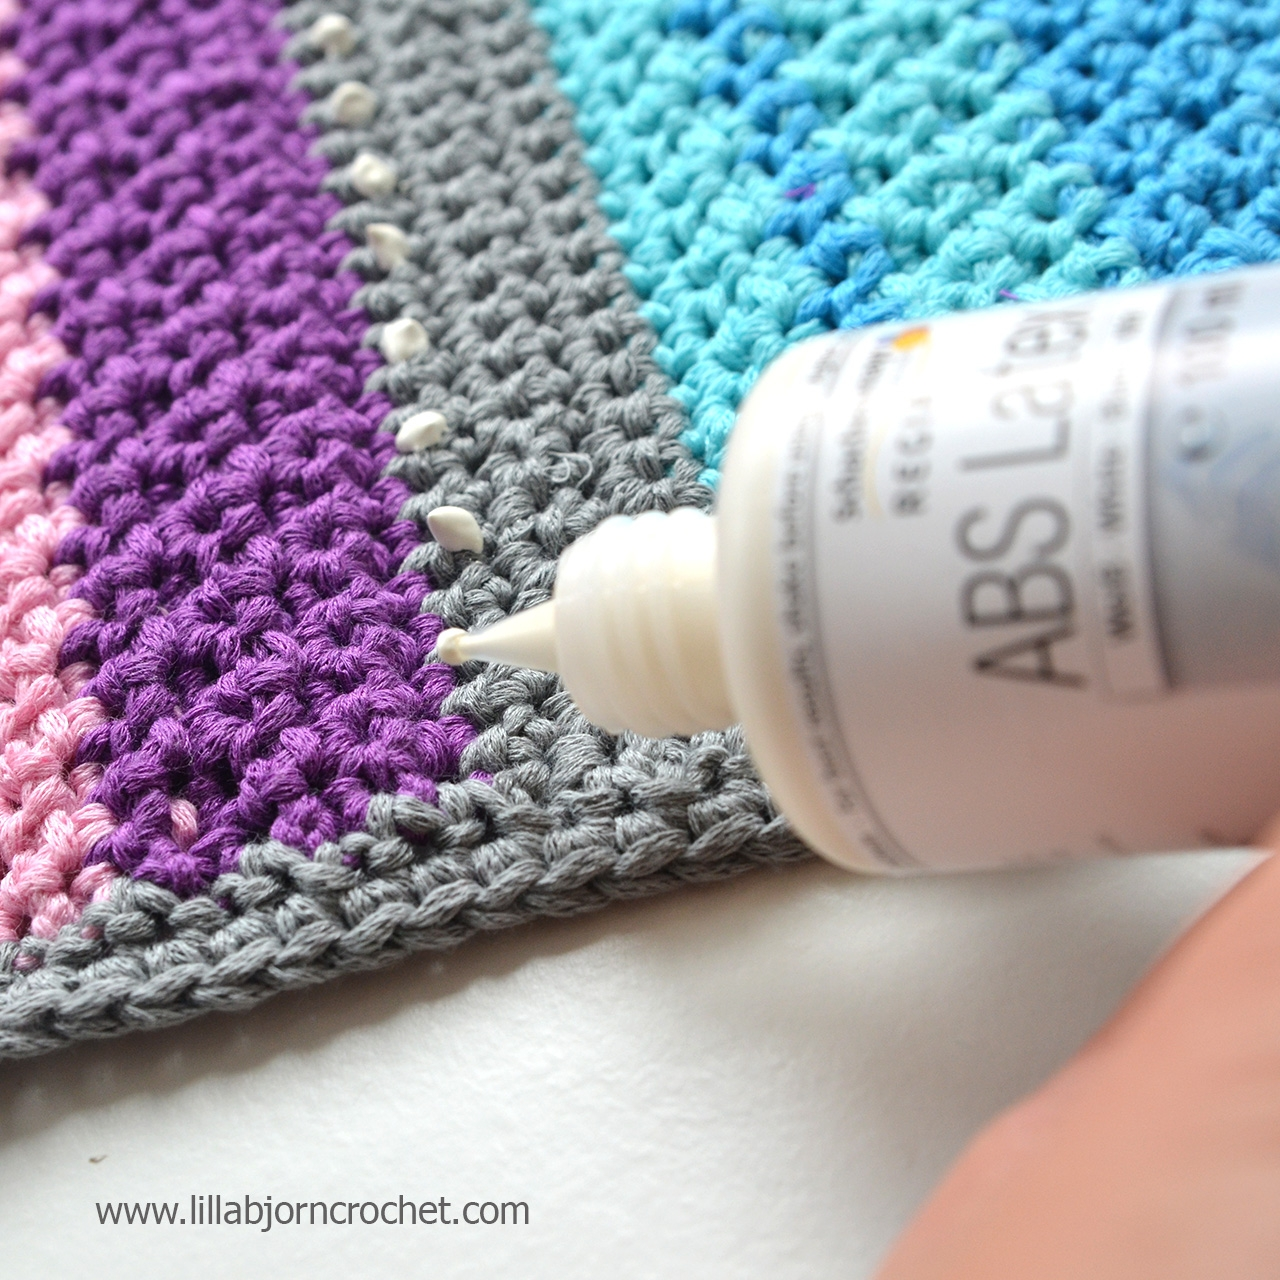 3 Ways To Make Crocheted Rugs Non Slip Lillabjrns Crochet World Pertaining To Non Slip Rugs (View 13 of 15)